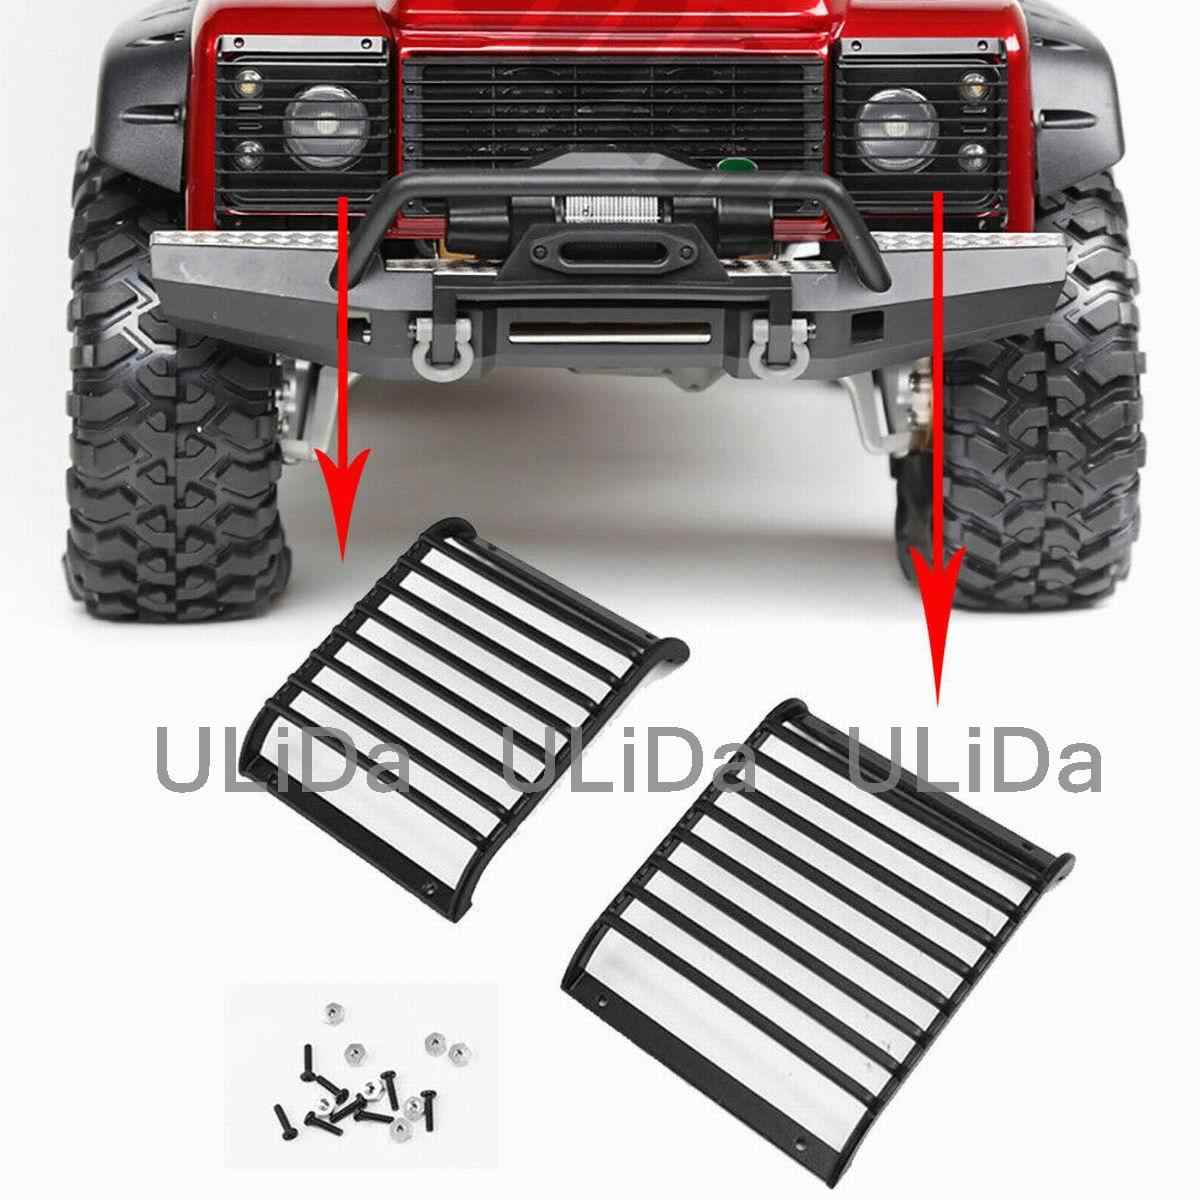 2pcs Black Front Head Engine Hood Hinges Covers for  TRX4 1//10 RC Car